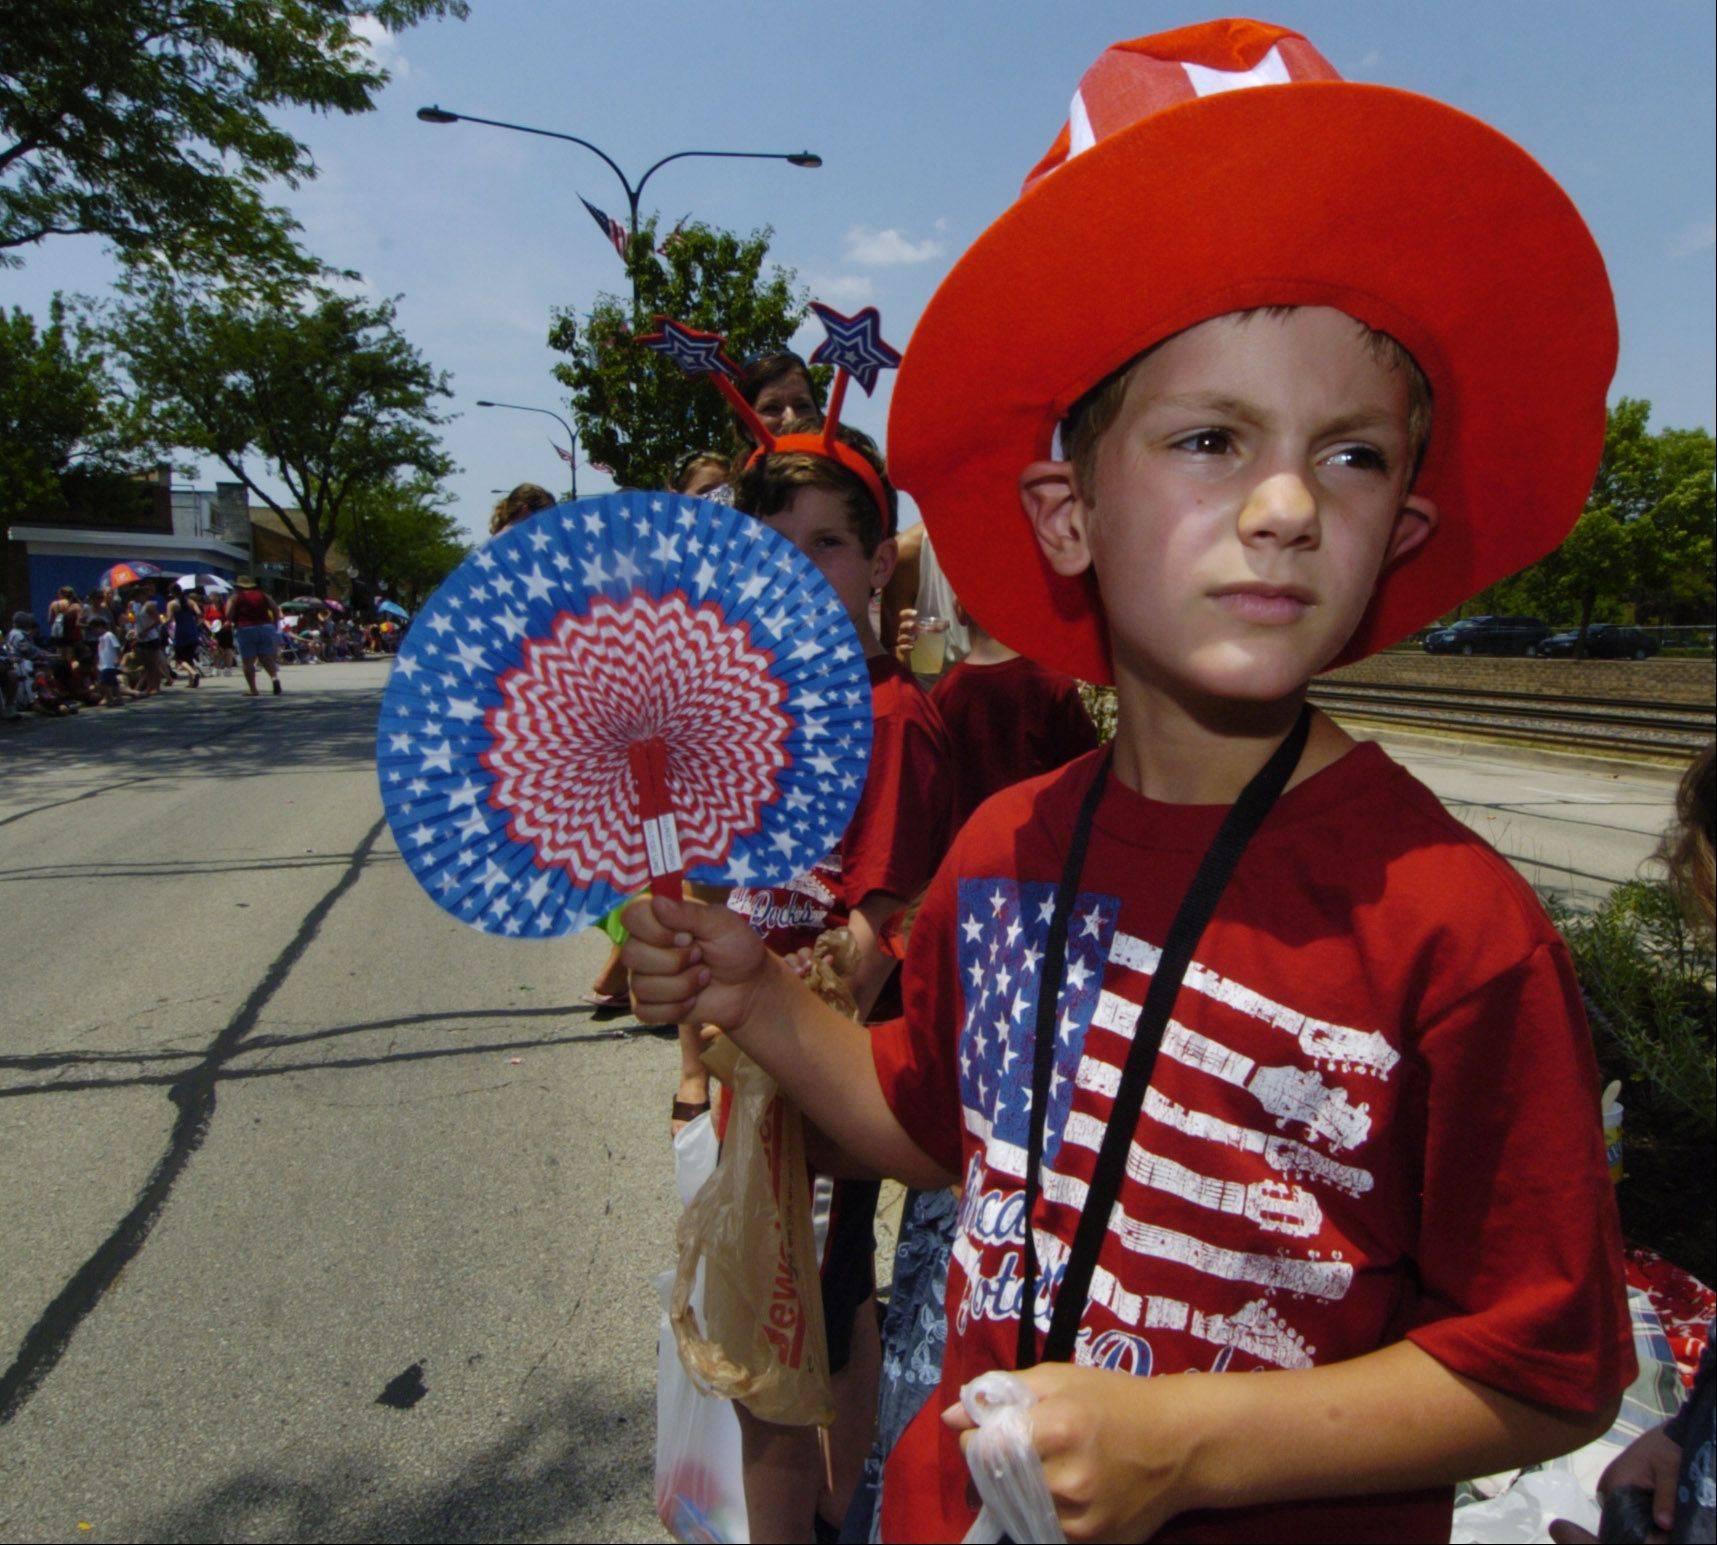 Jack Morman, 7, originally of Mount Prospect and now living in Denver, fans himself while waiting for the arrival of the next parade group during the Mount Prospect Fourth of July parade Wednesday. He comes back every year to watch the parade and visit family.